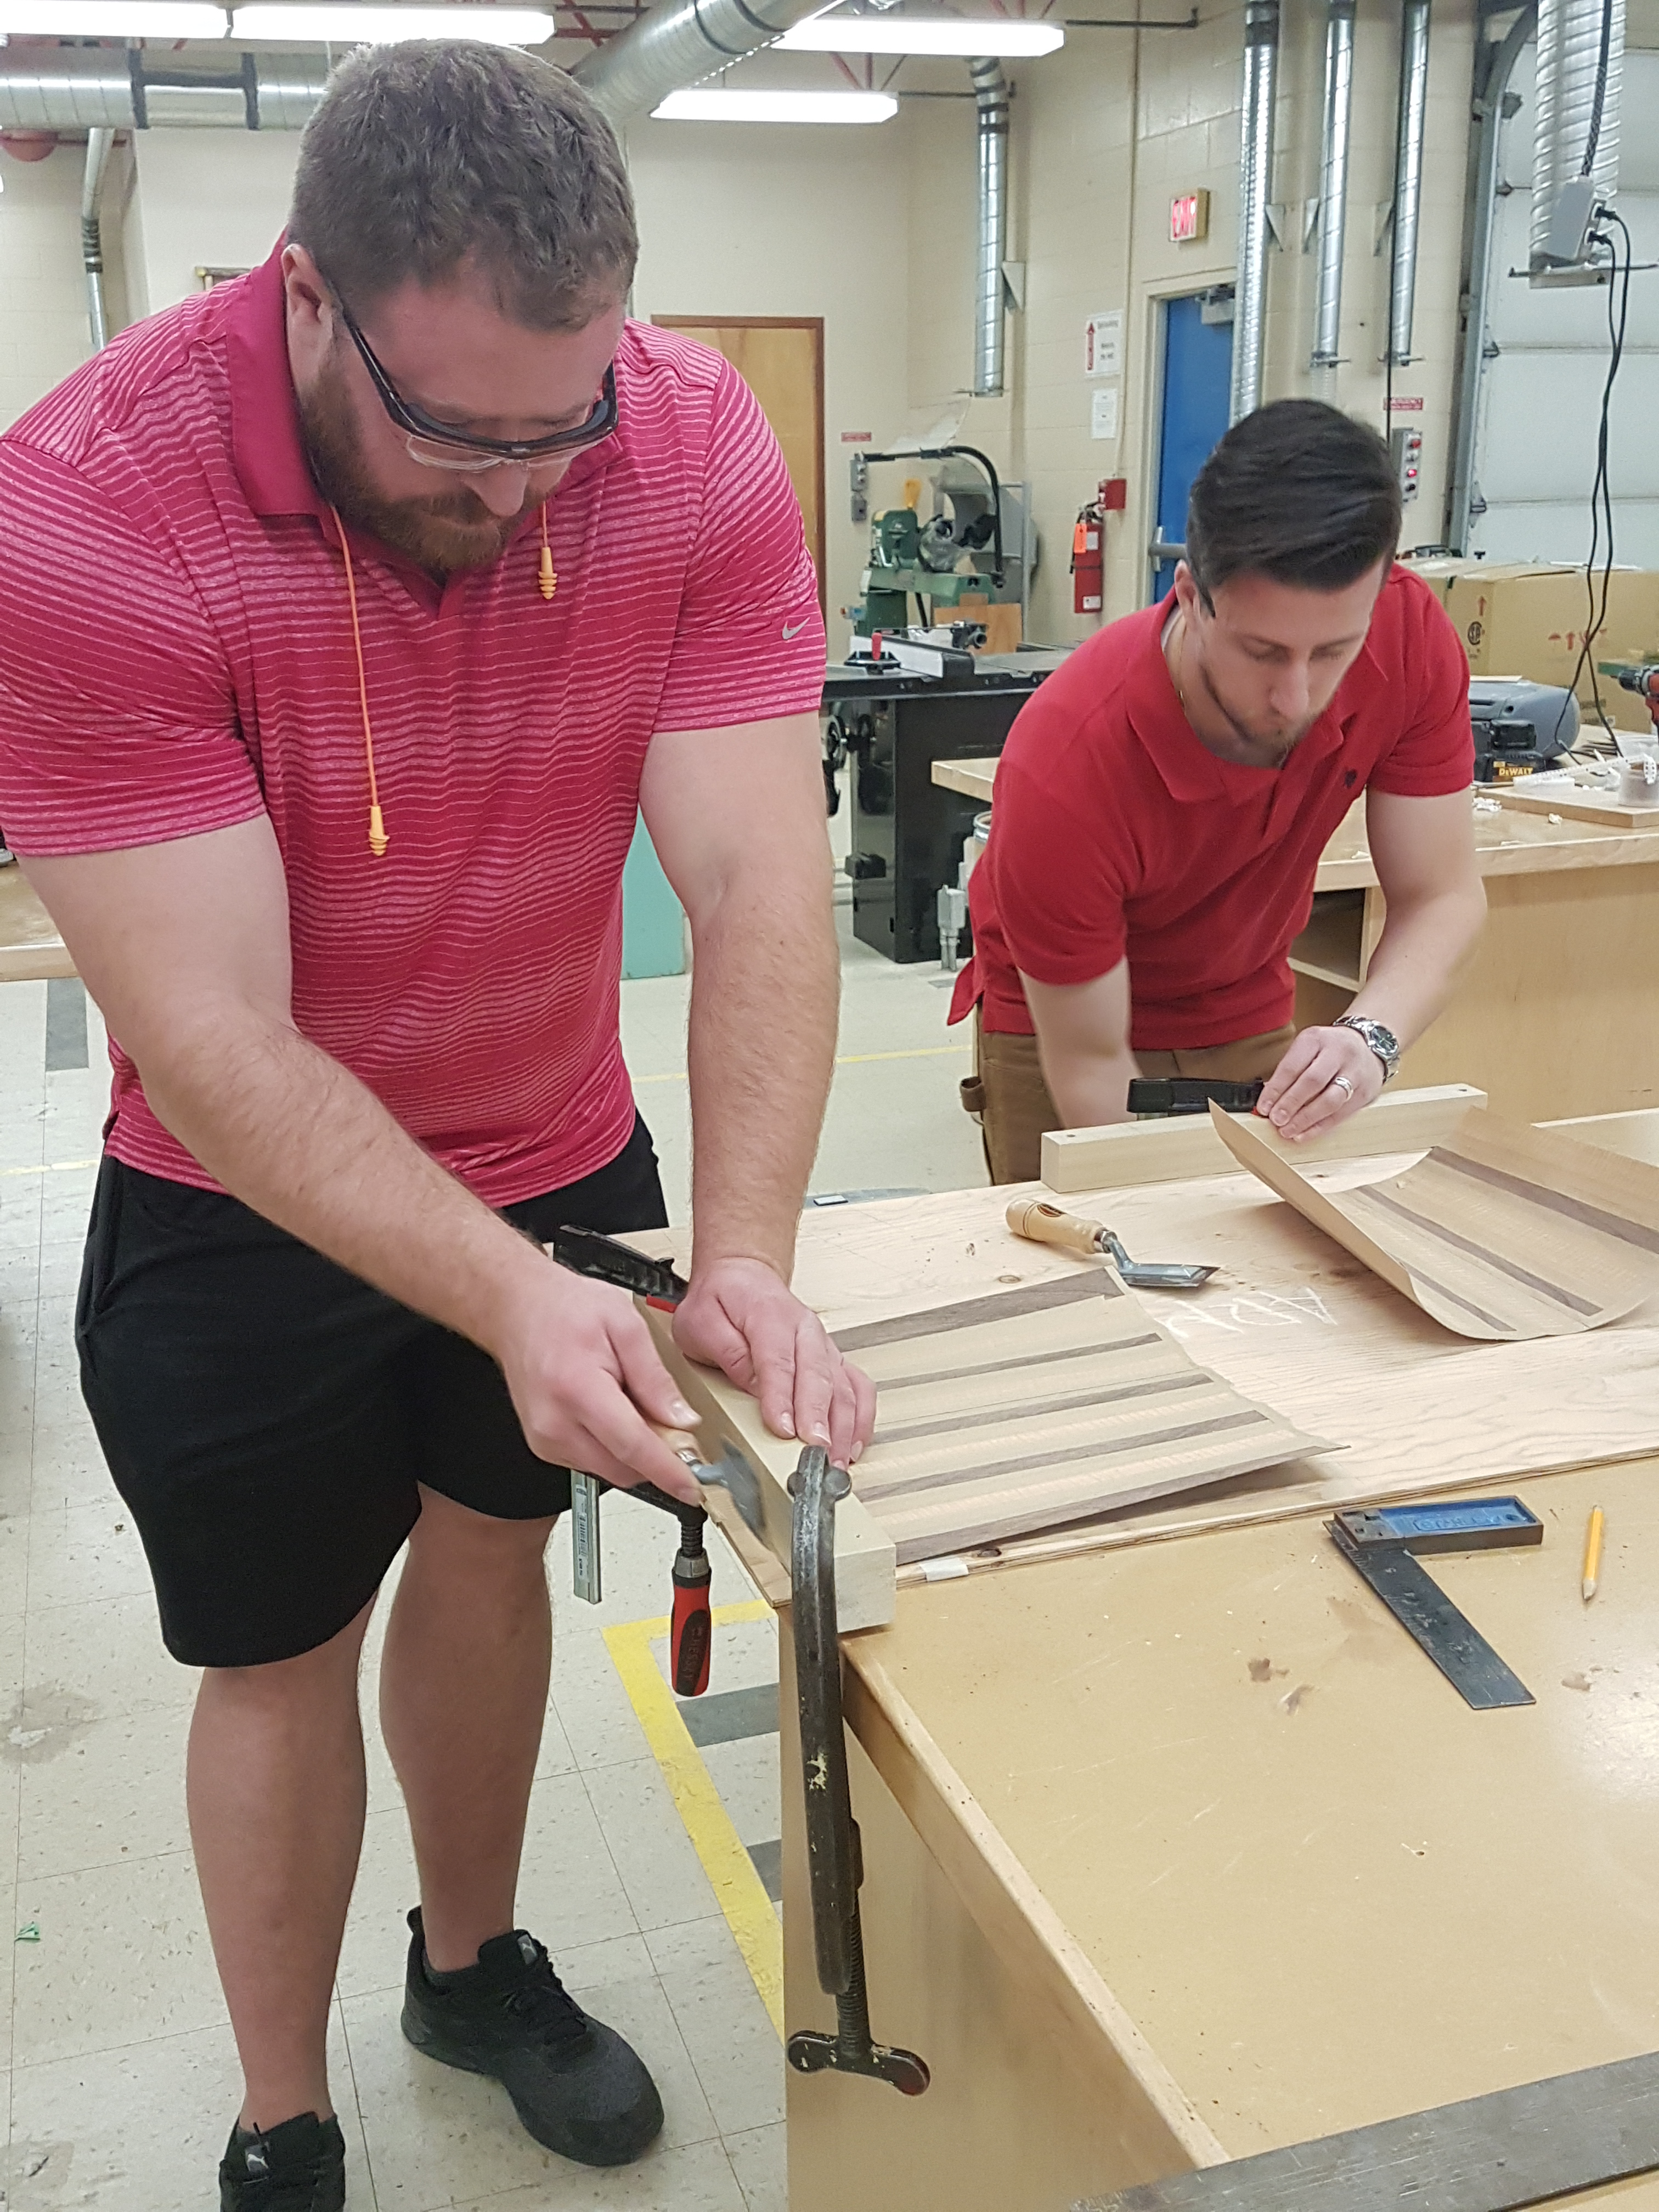 meet mick mcgowan: the wca's canadian connection – woodwork